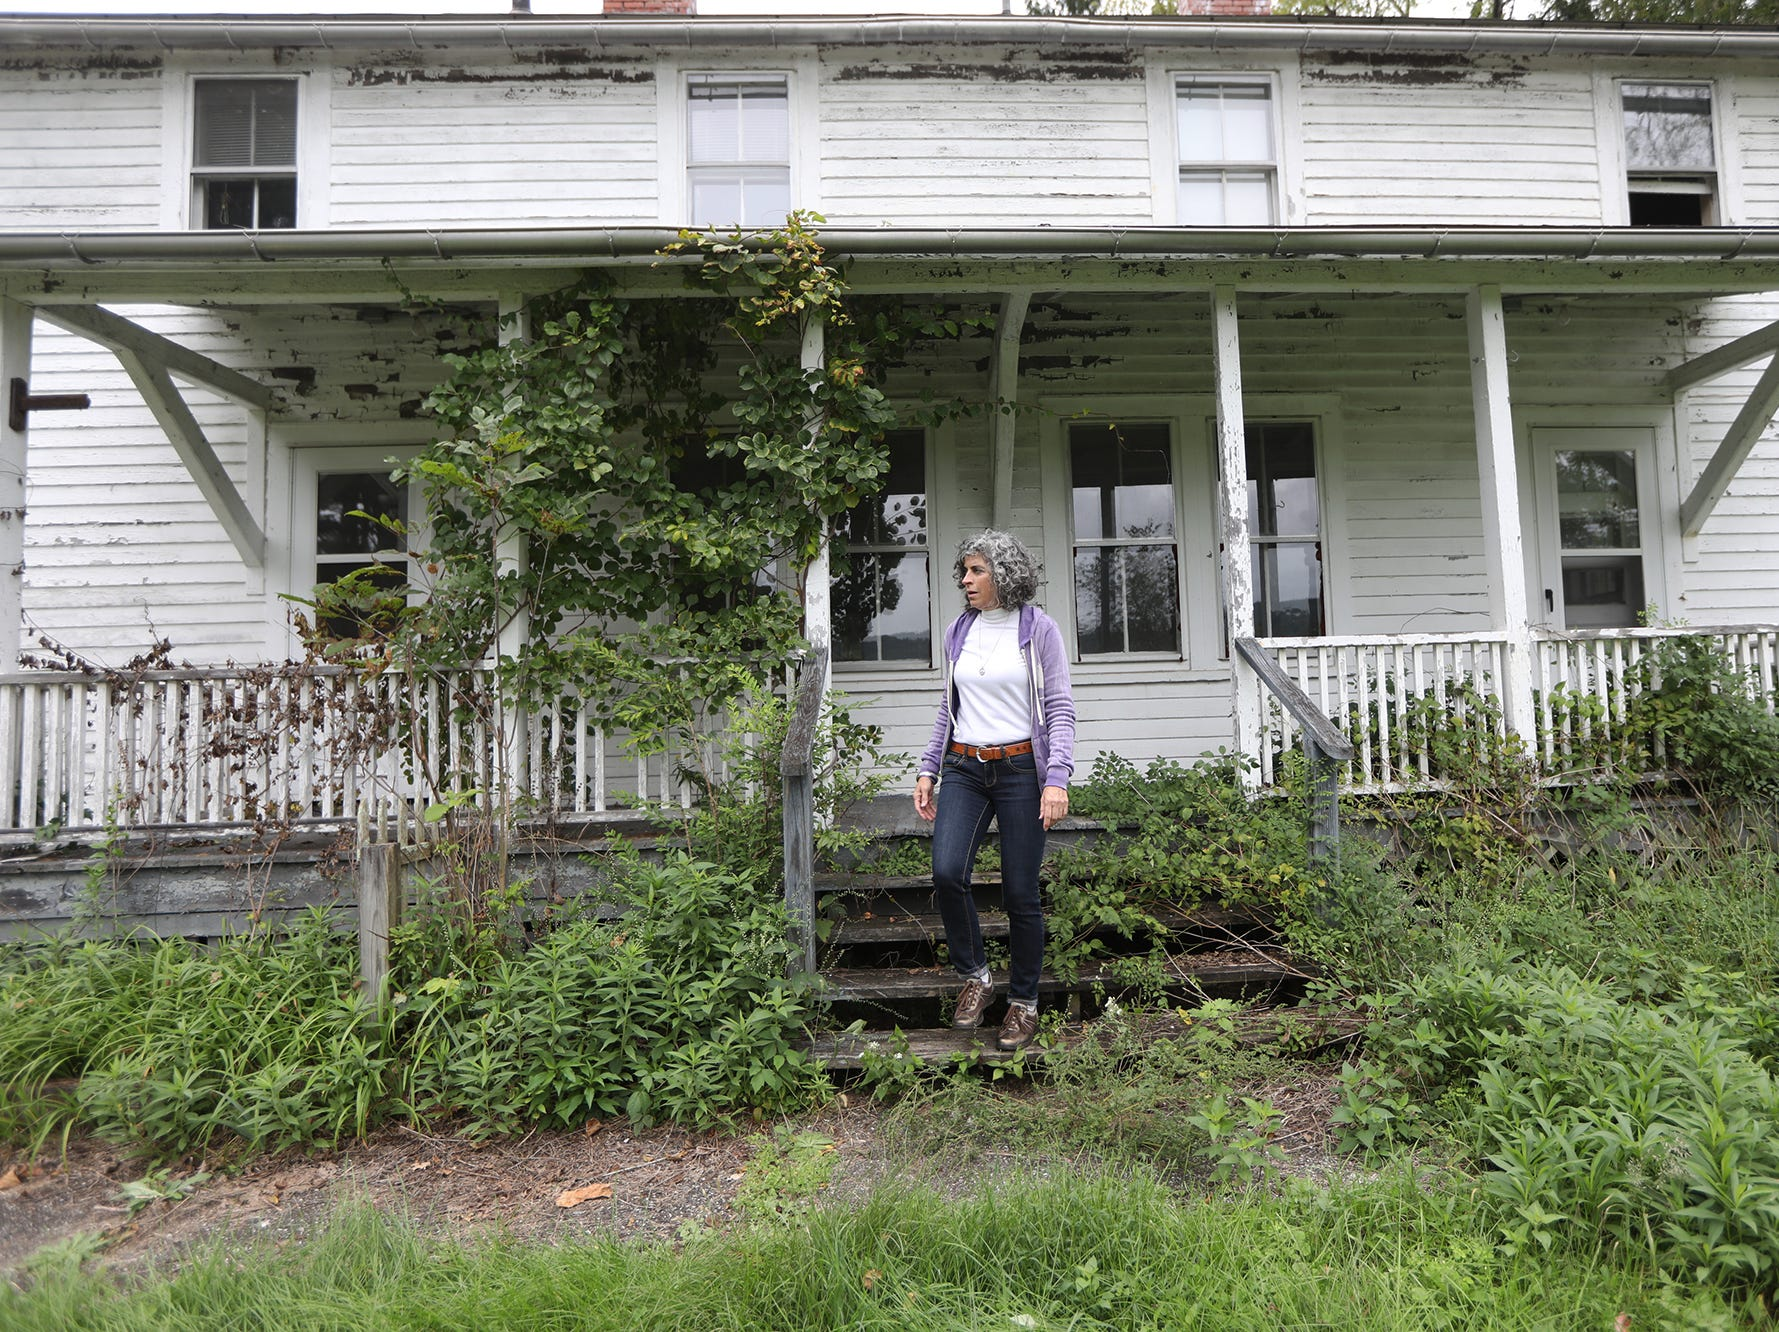 Rosemarie Briegel, 62, currently of Sandyston, is shown in front of the Walpack home where she lived for the majority of her first 20 years. Sunday, September 23, 2018